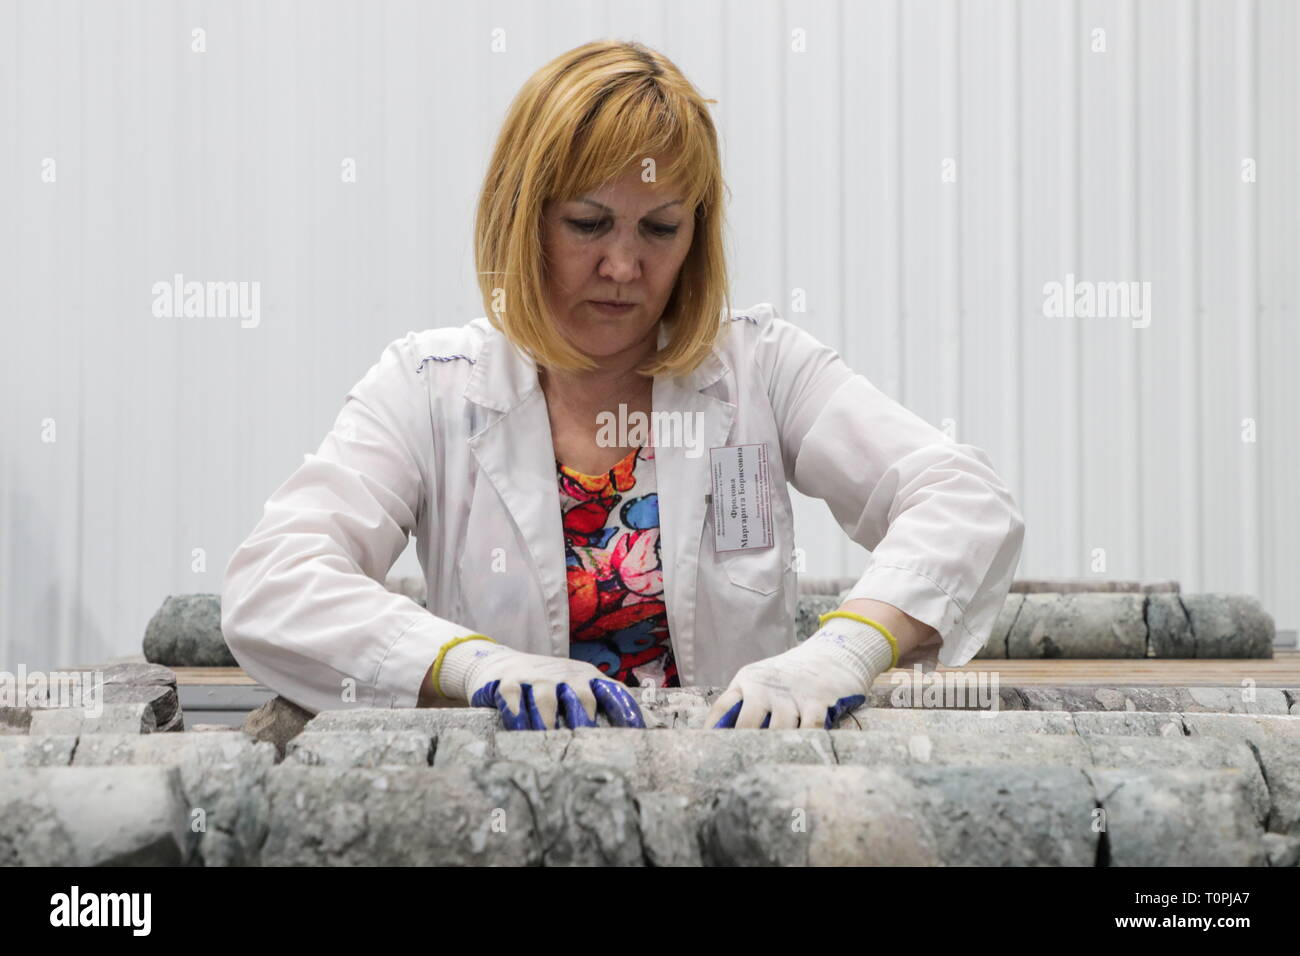 Kogalym, Russia. 21st Mar, 2019. KOGALYM, RUSSIA - MARCH 21, 2019: An employee of the core sample and PVT analysis centre of KogalymNIPIneft, part of Lukoil Engineering. Vyacheslav Prokofyev/TASS Credit: ITAR-TASS News Agency/Alamy Live News - Stock Image